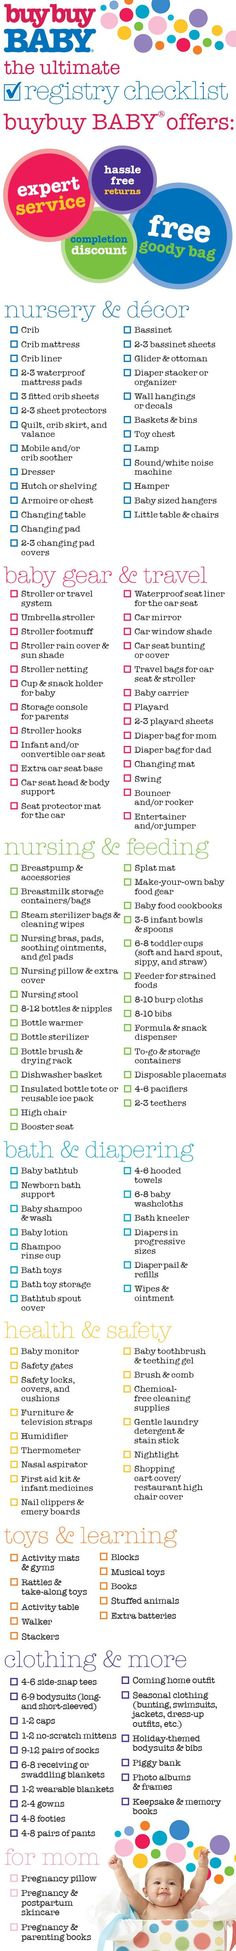 buybuy BABY's Ultimate Registry Checklist It's a fact of life: your teeny, tiny baby will need a lot of stuff. The good news is (besides you being pregnant, of course), we're here to help. Our registry checklist identifies all the baby essentials new parents need. Still feeling like a registry rookie? Visit us in store; our friendly, knowledgeable registry experts would love to help you. Schedule your in-store appointment today!